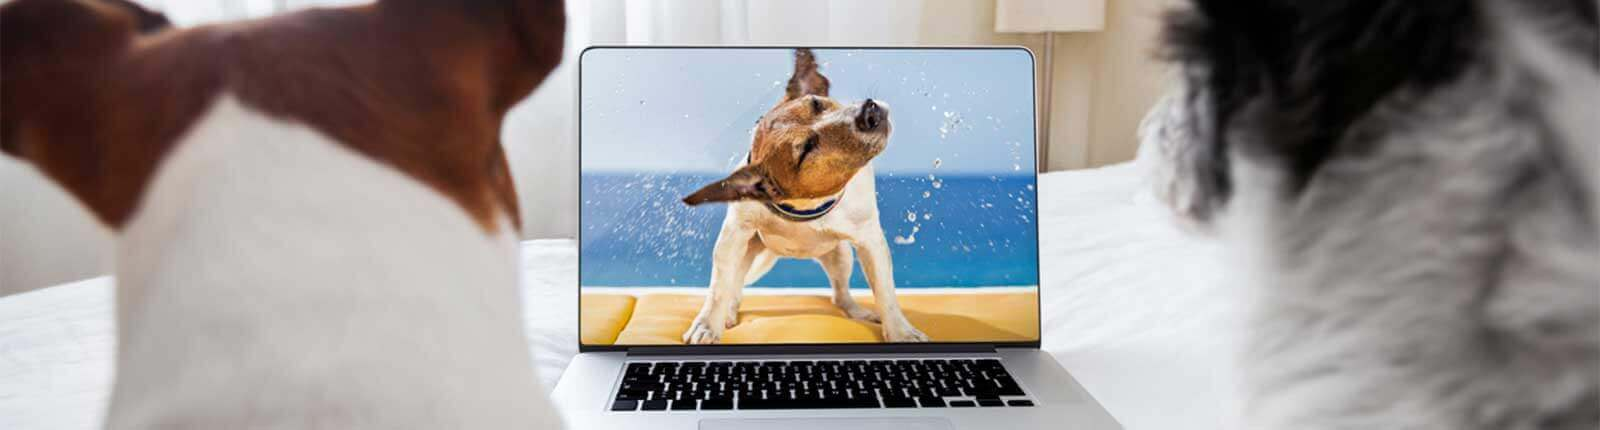 how to take care of your pet videos